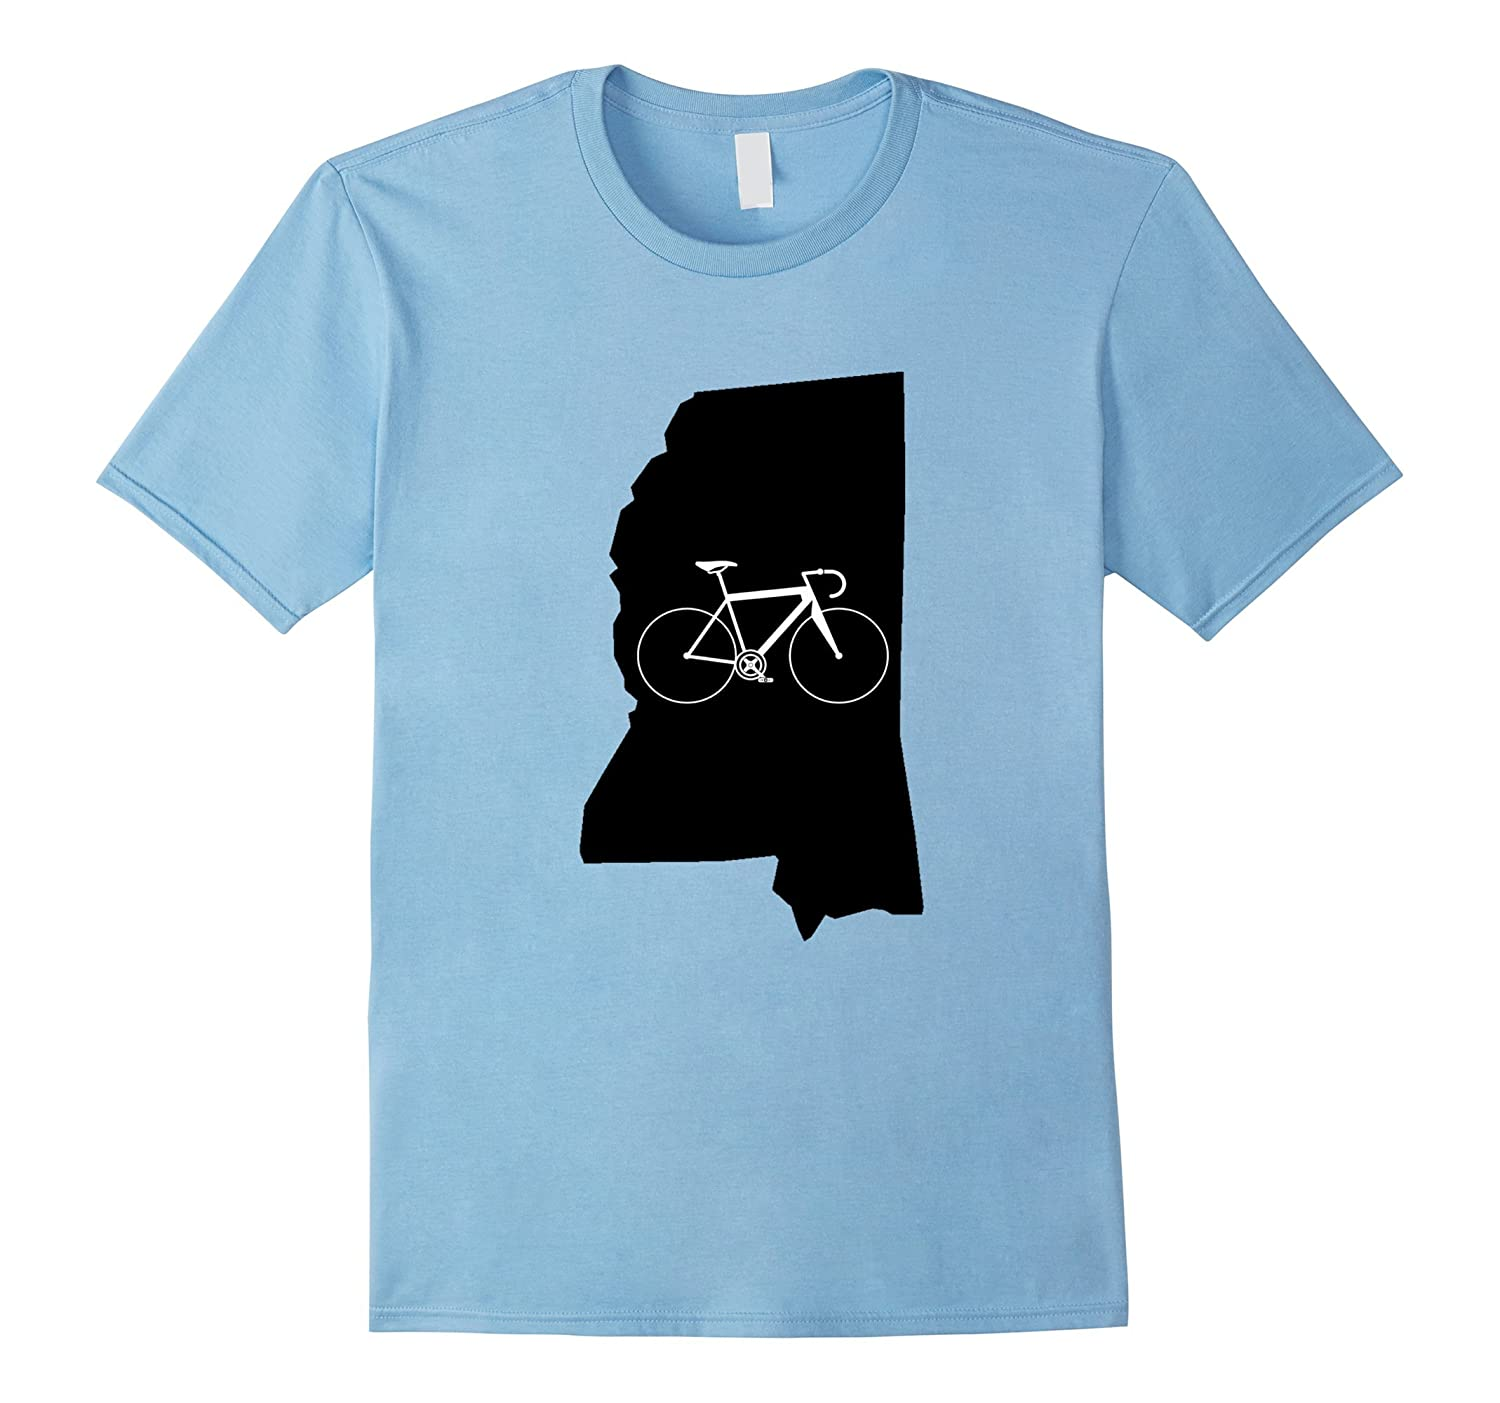 Bicycle Mississippi Shirt, Cyclist Tee, State Road Bike-FL